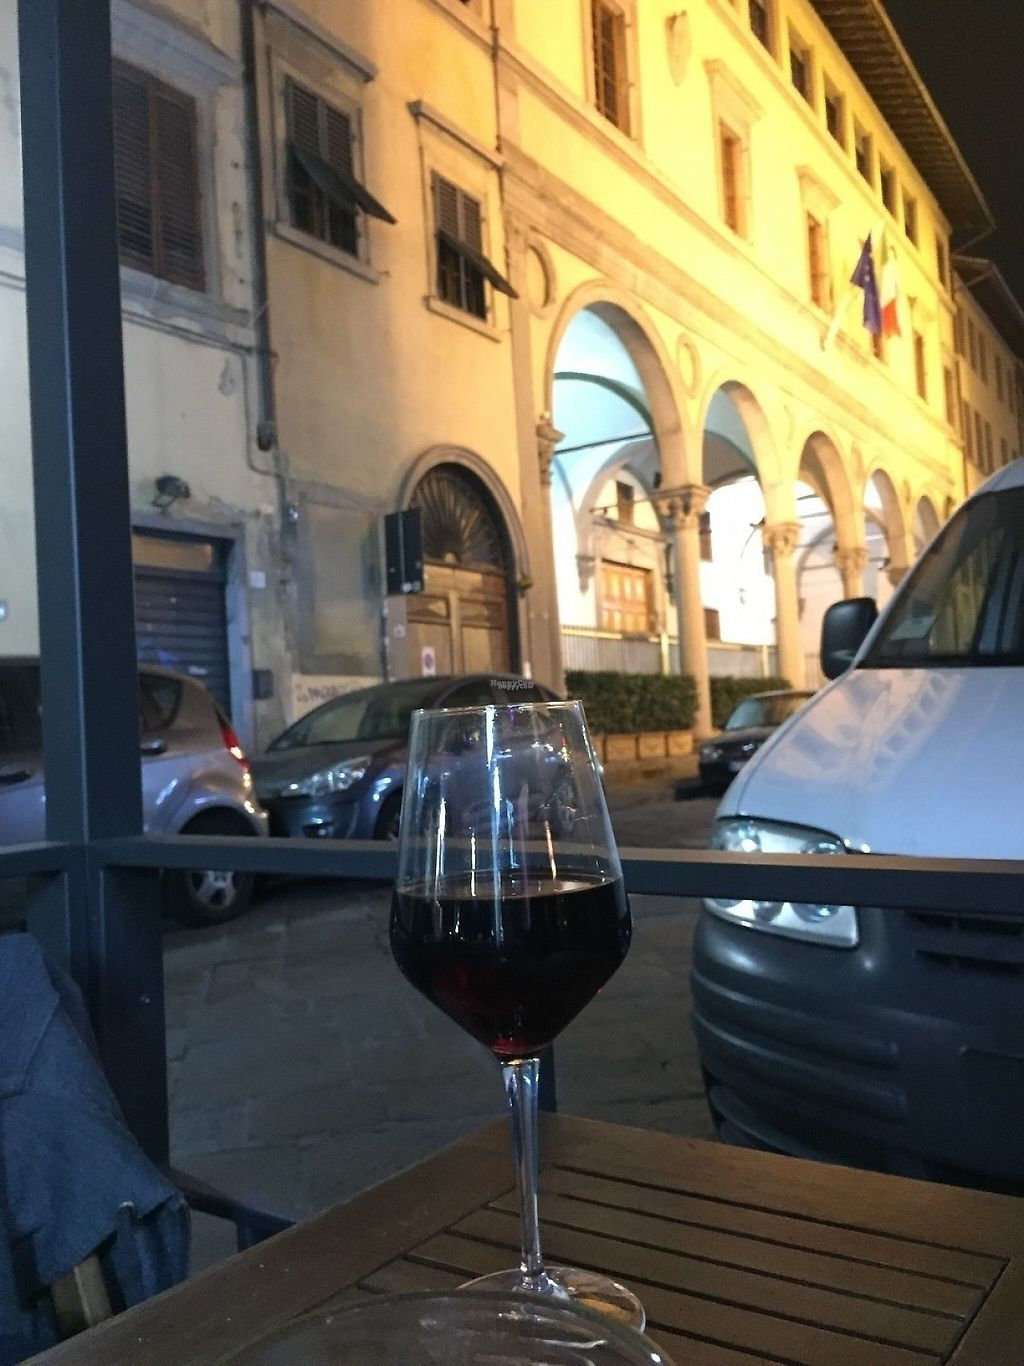 """Photo of Il Vegano - Firenze  by <a href=""""/members/profile/VeganEater2"""">VeganEater2</a> <br/>has a street terrace <br/> November 25, 2016  - <a href='/contact/abuse/image/54089/194127'>Report</a>"""